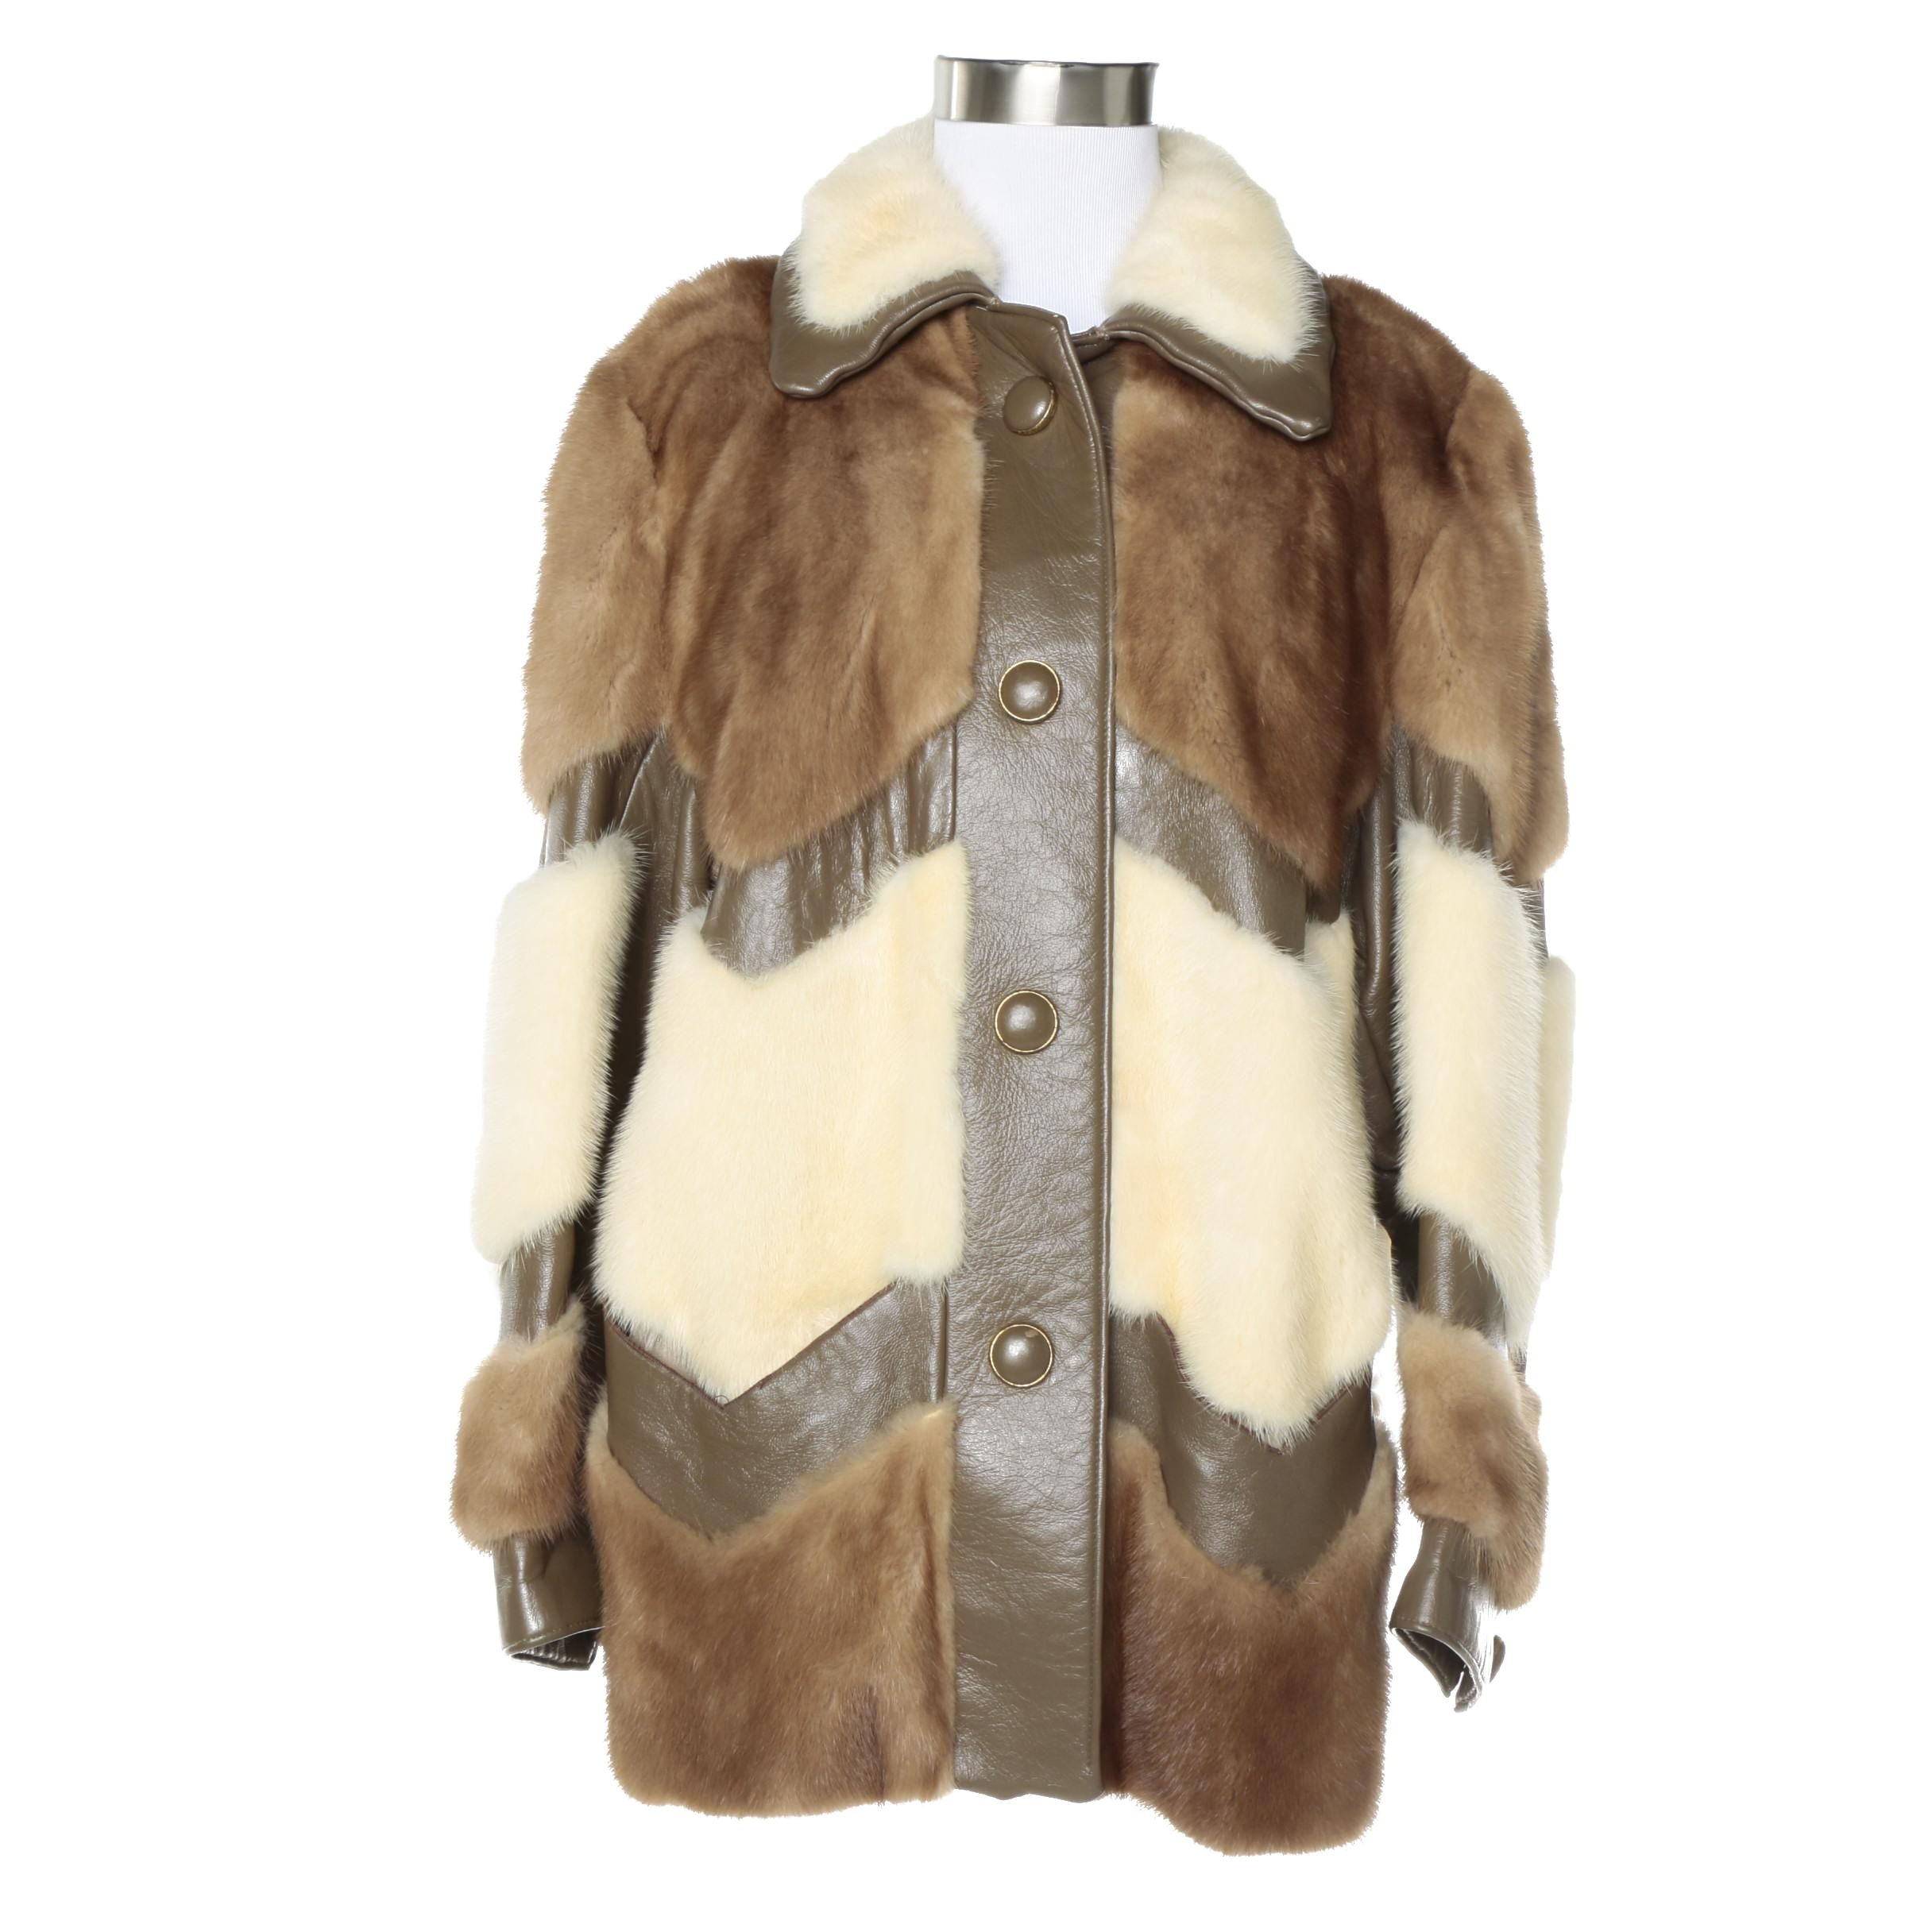 Women's Vintage Mink Fur and Leather Patchwork Jacket